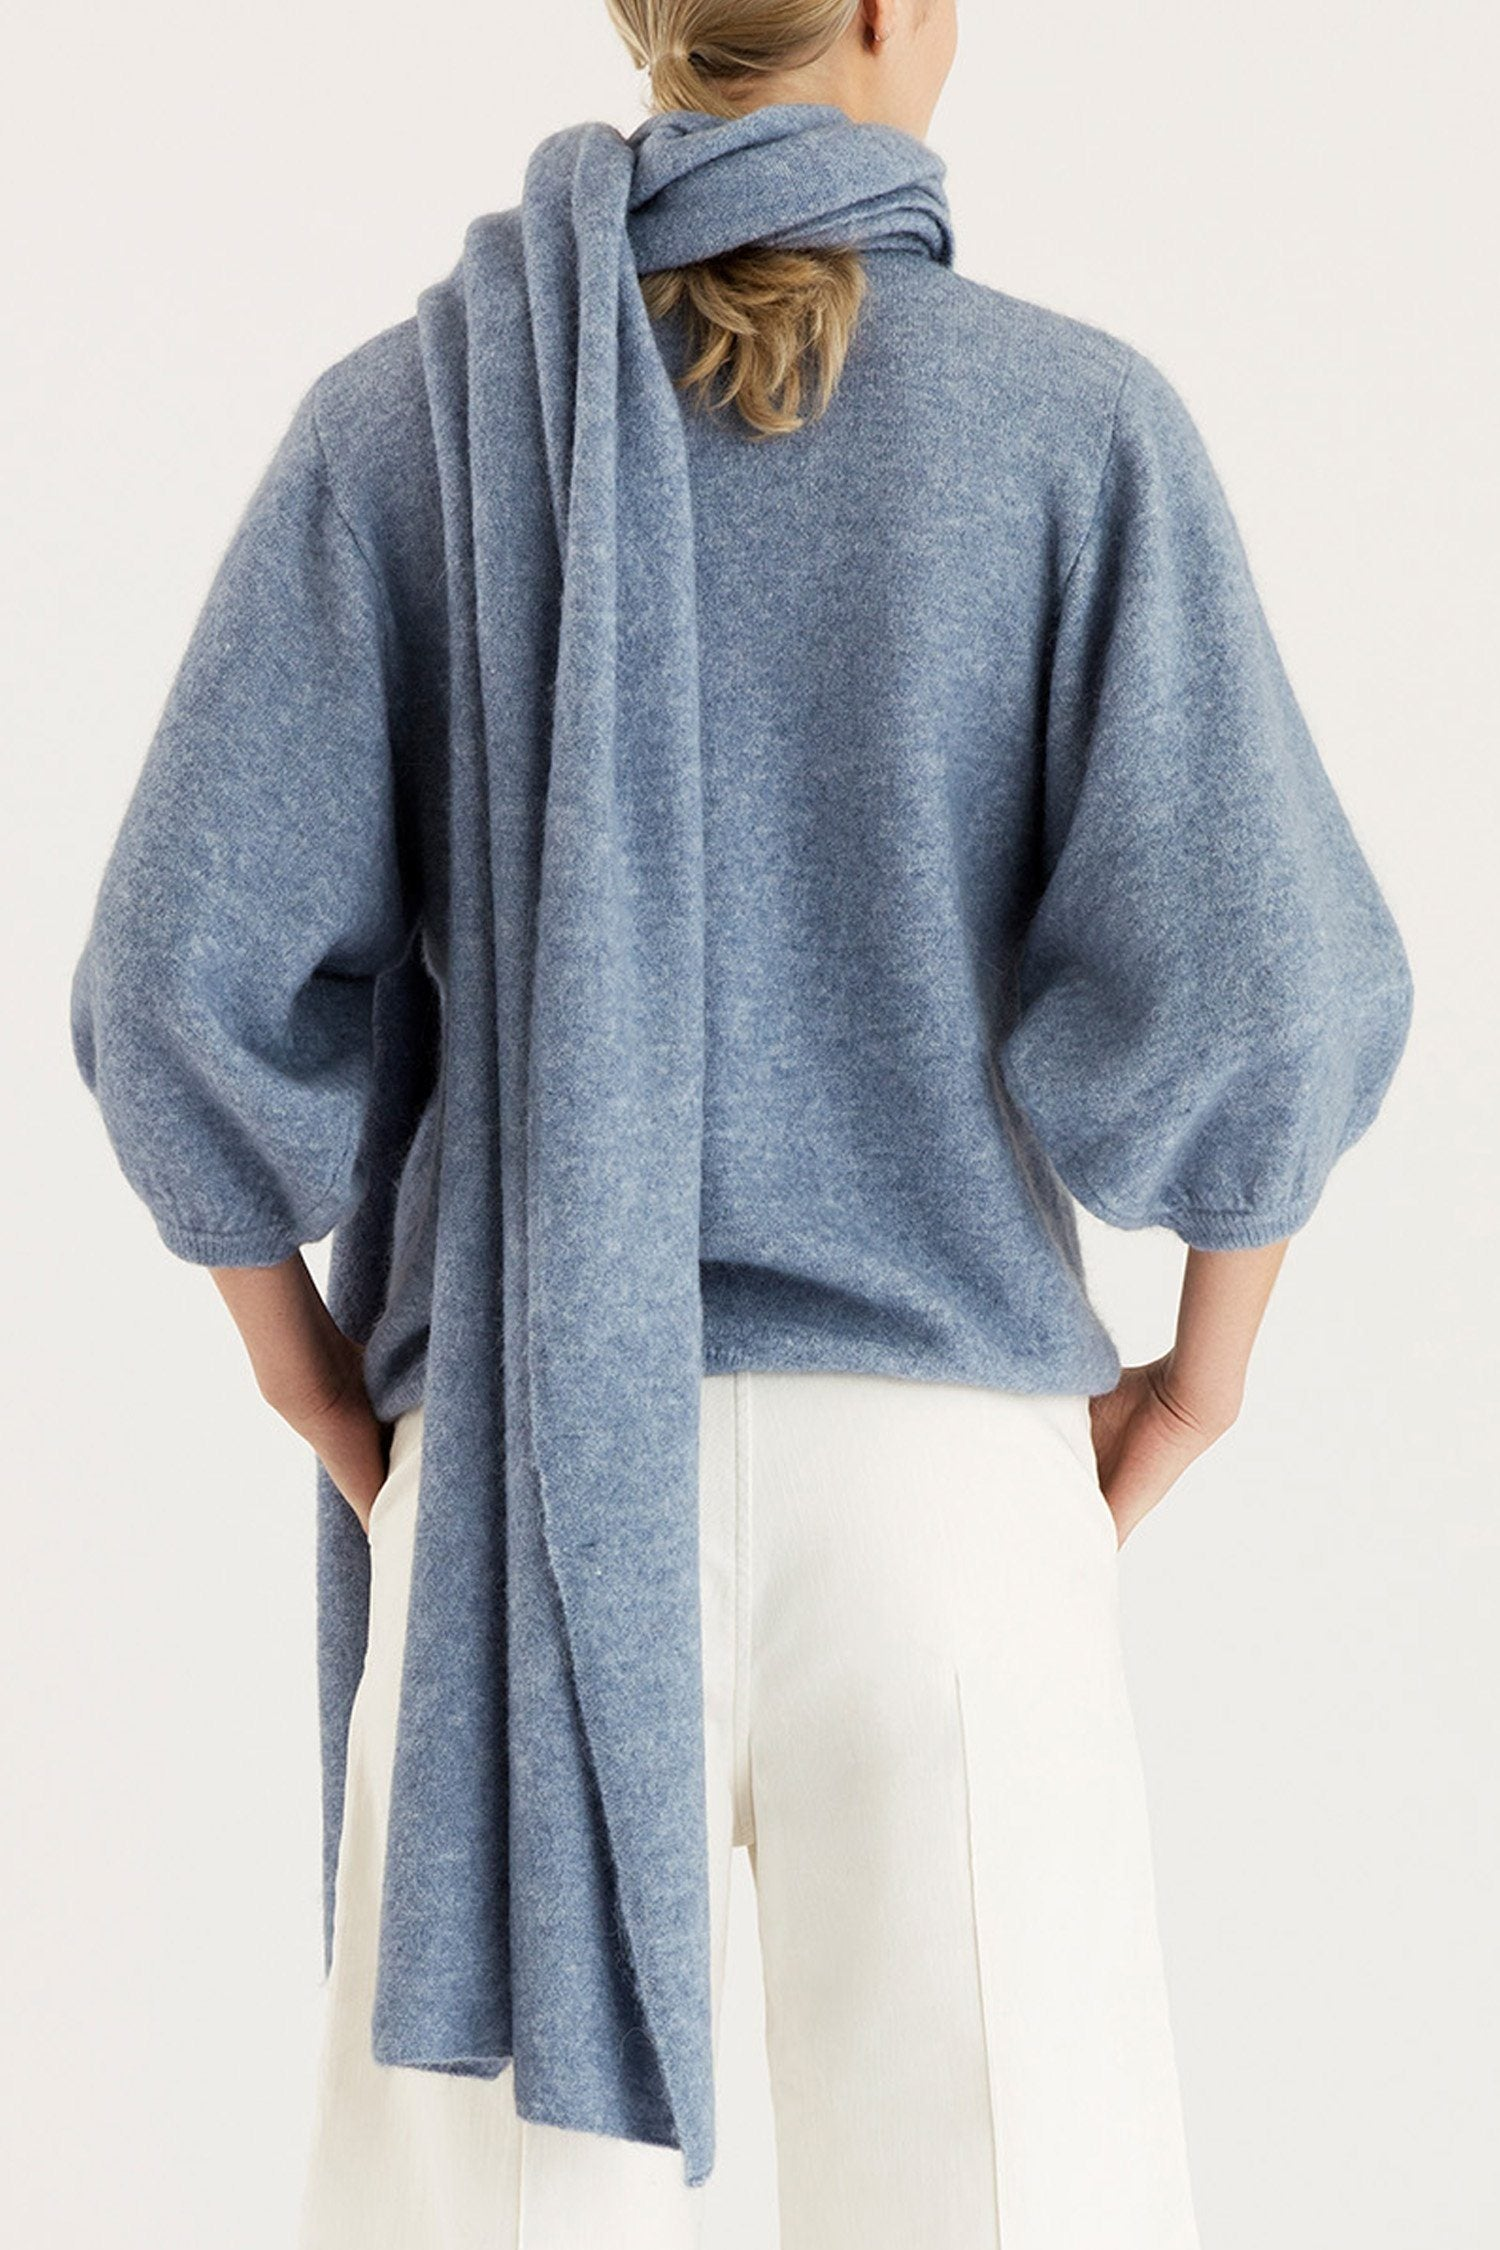 ELSA SCARF - LIGHT BLUE Sweater Stylein